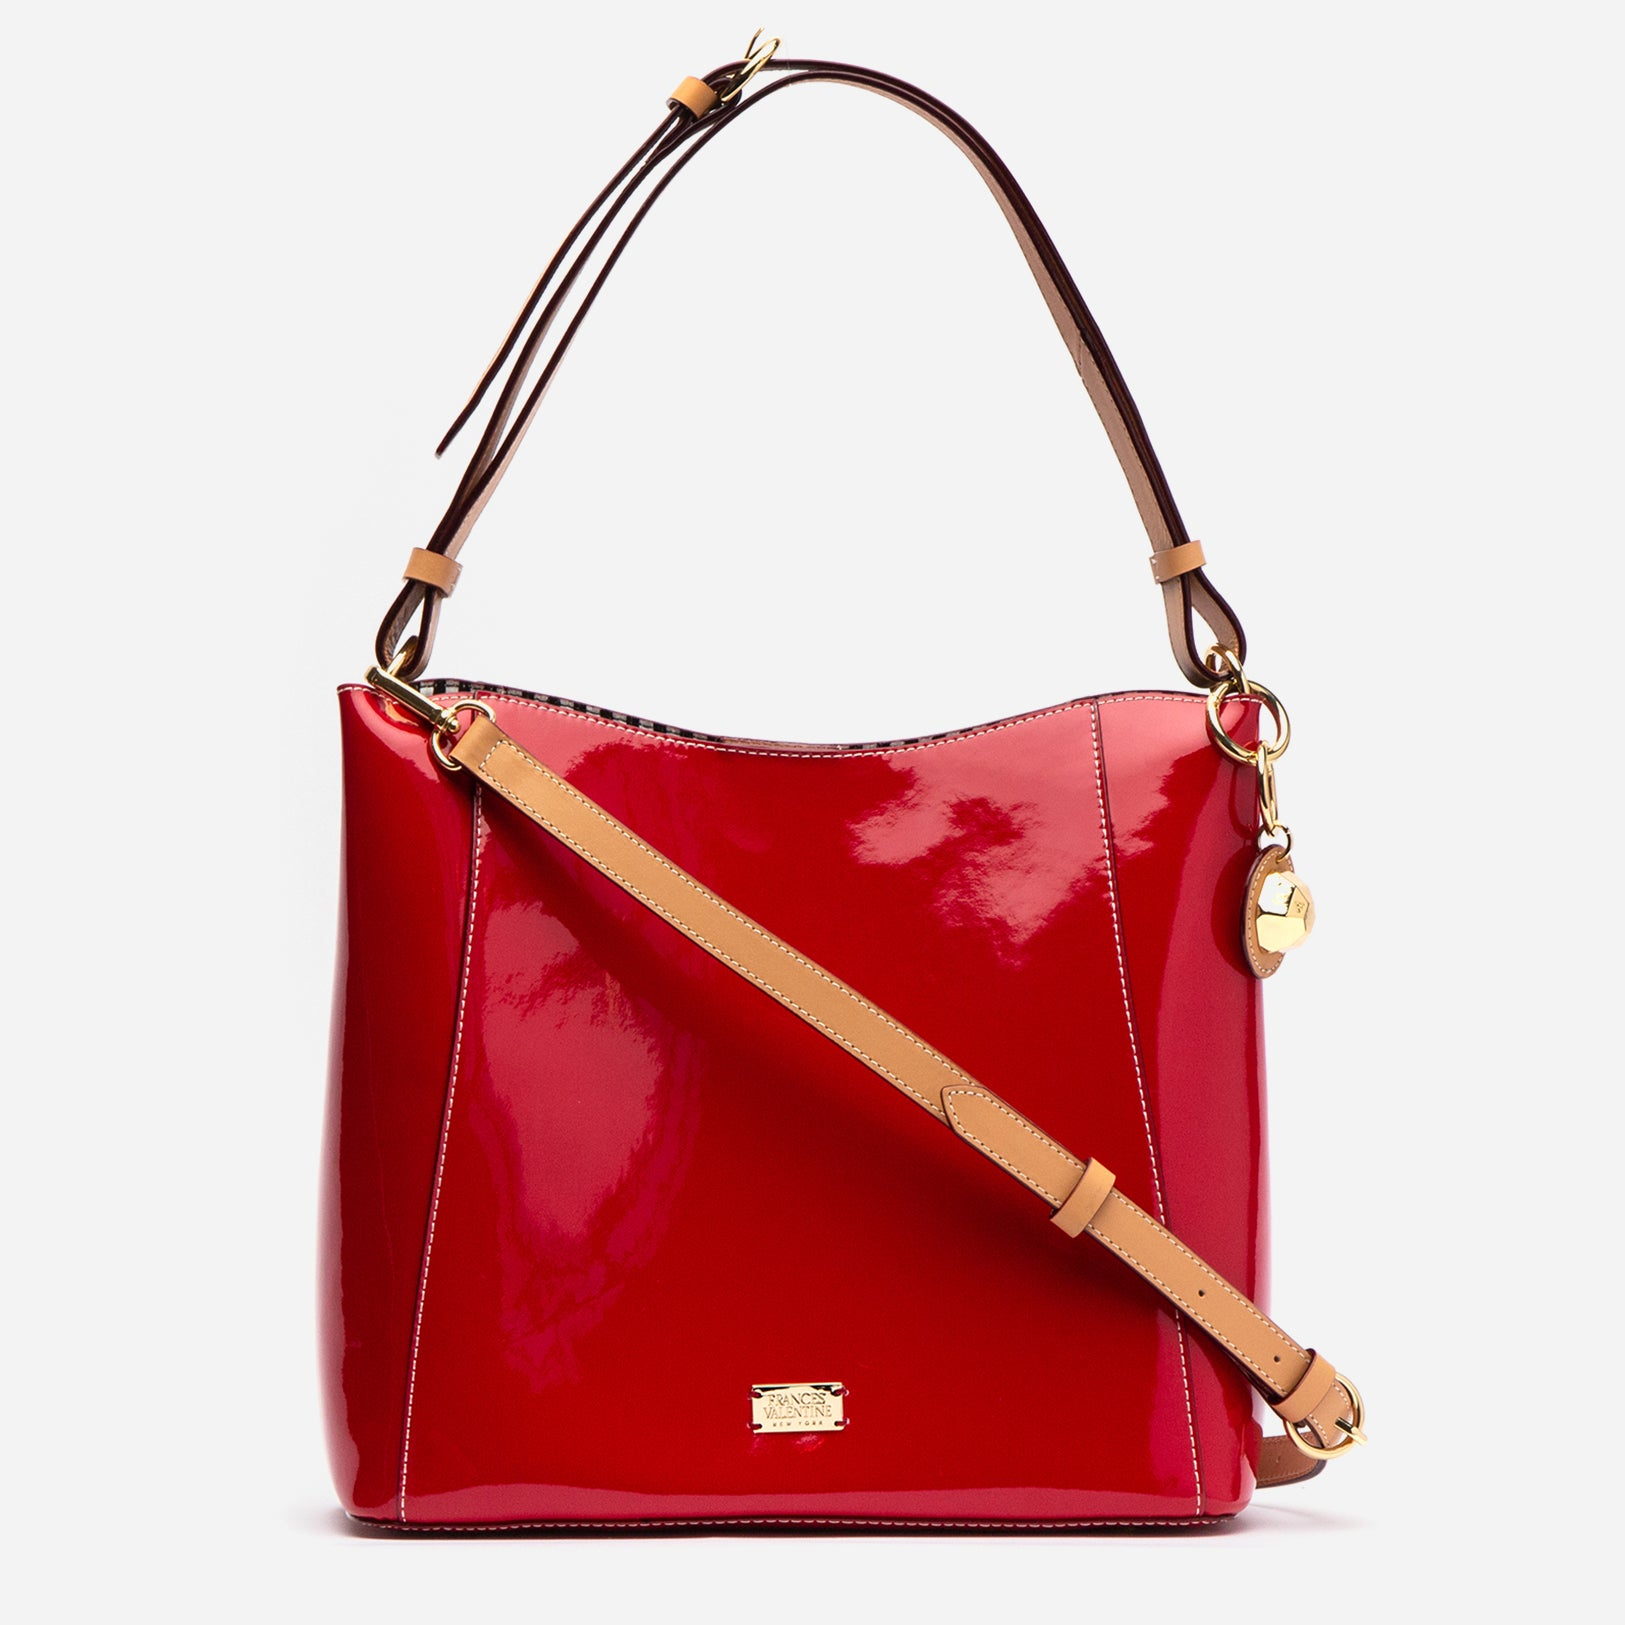 June Hobo Handbag Red Patent